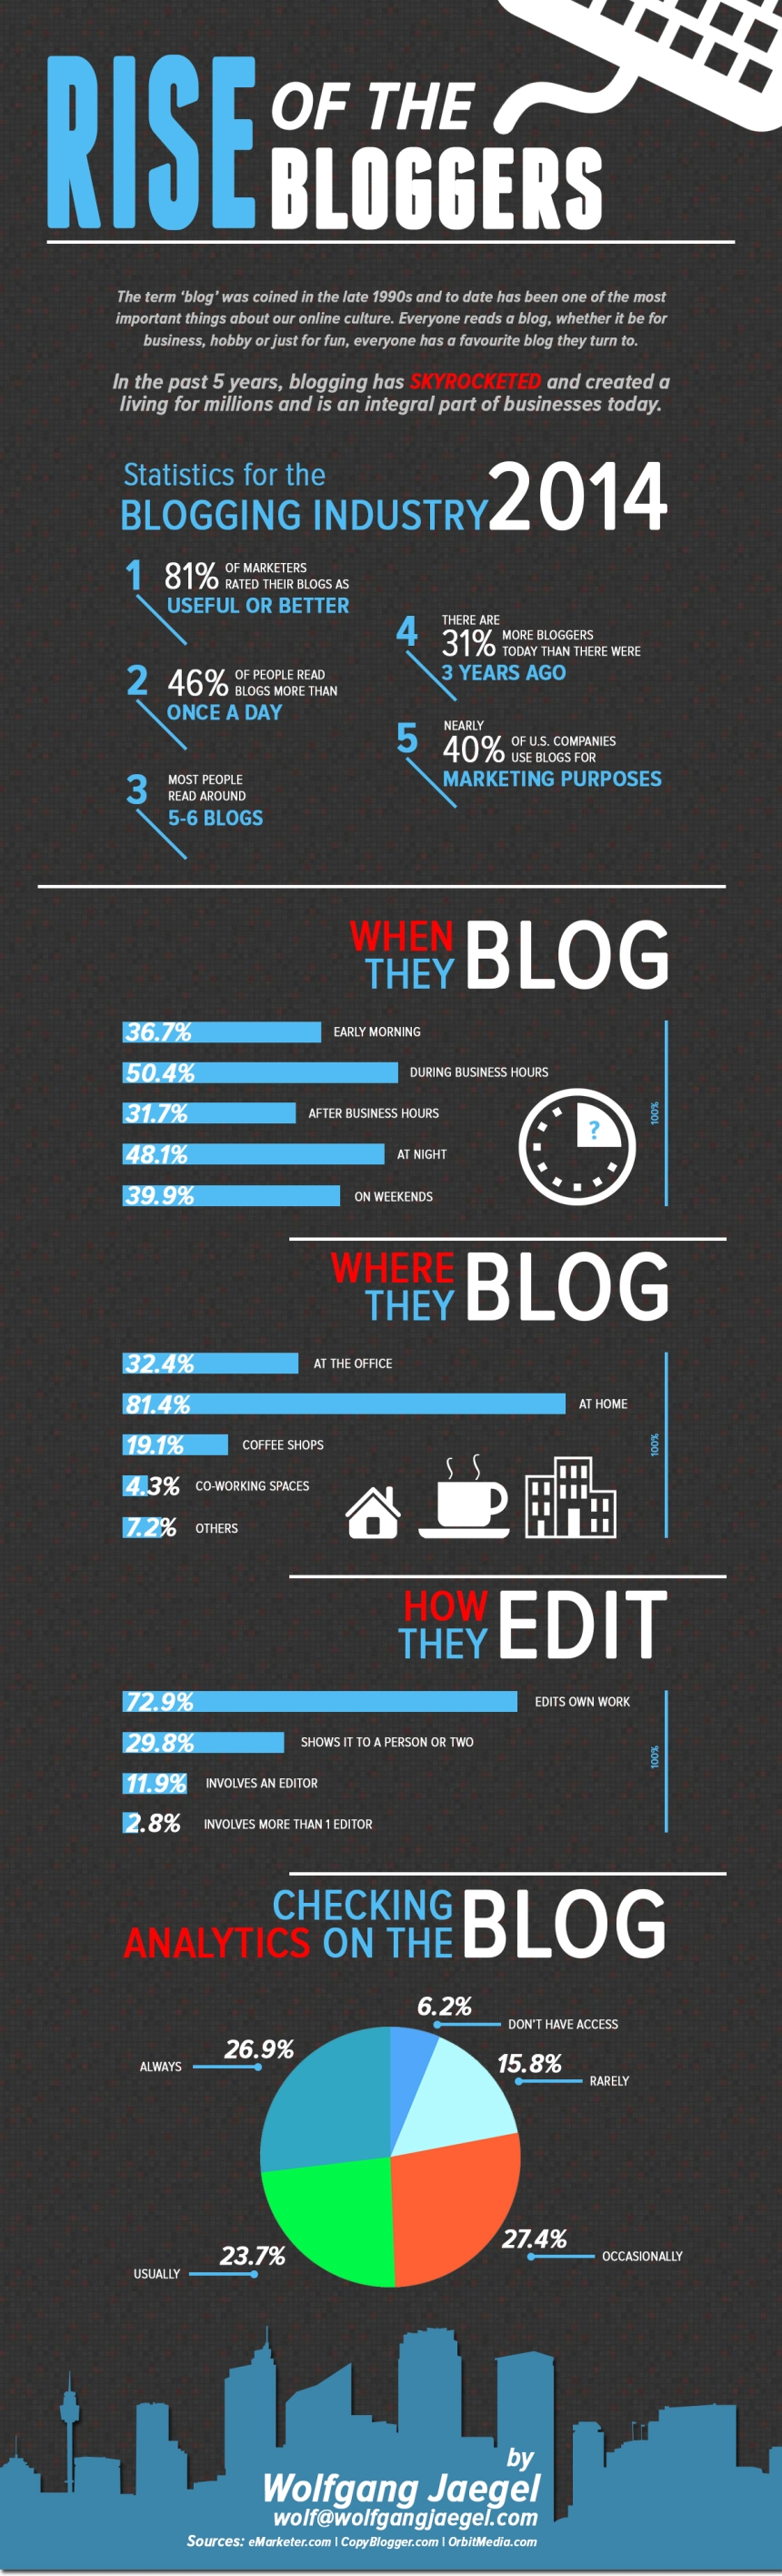 El imparable ascenso de los blogs